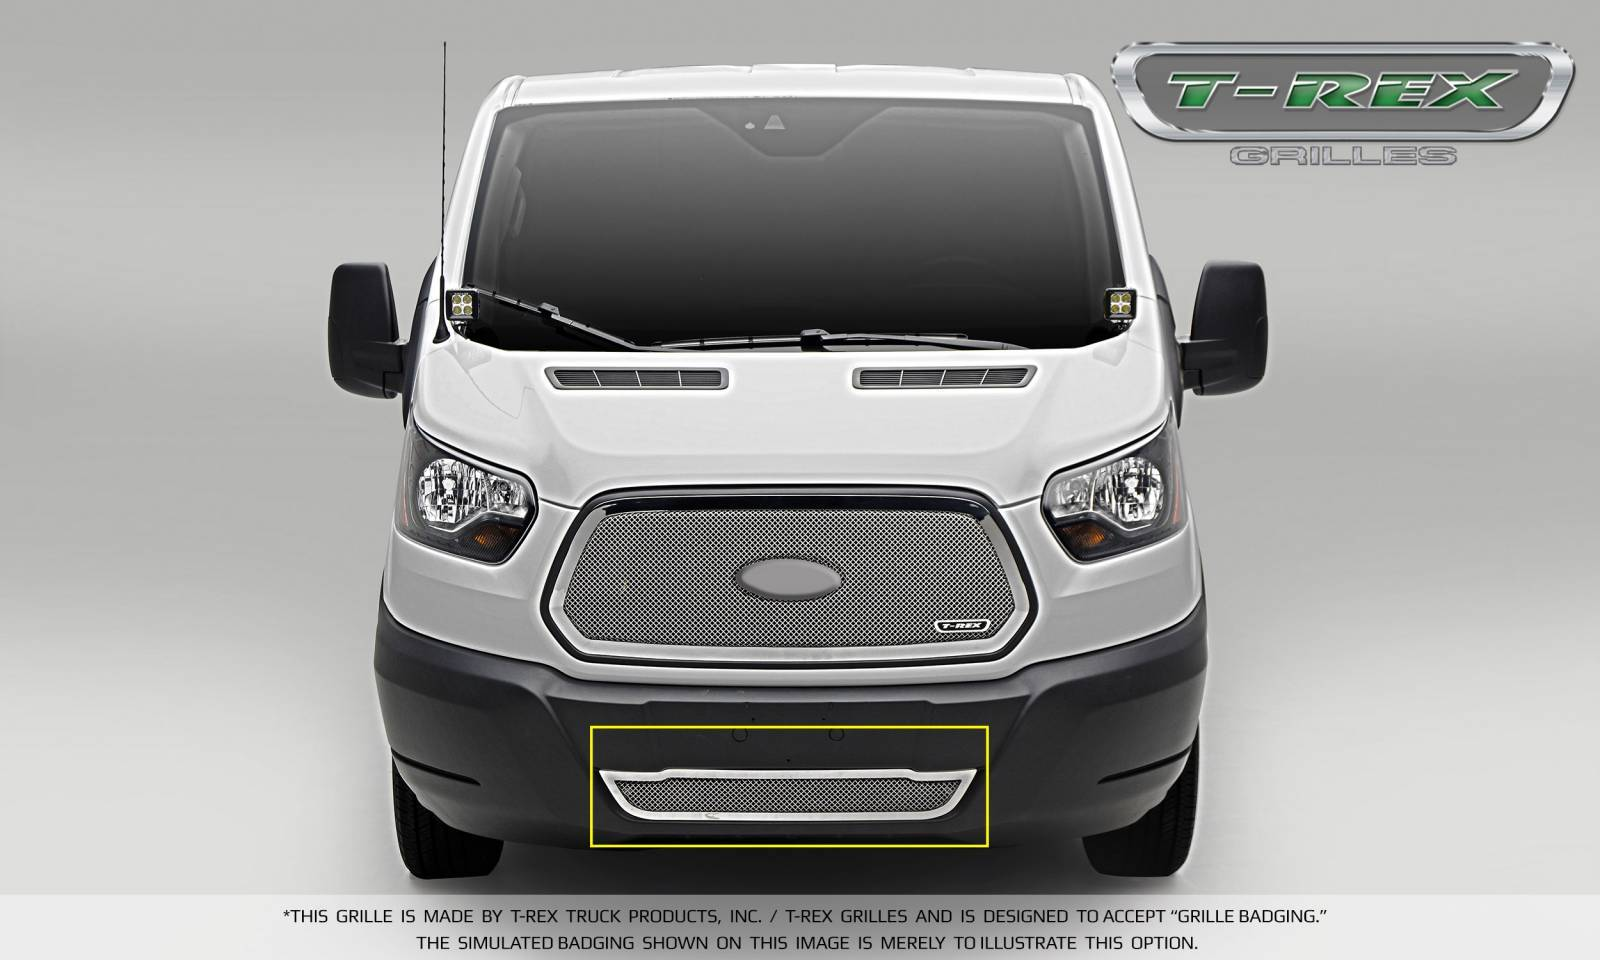 T-REX Ford Transit Van - Upper Class - Bumper Grille - Overlay - Polished Finish - Pt # 55575